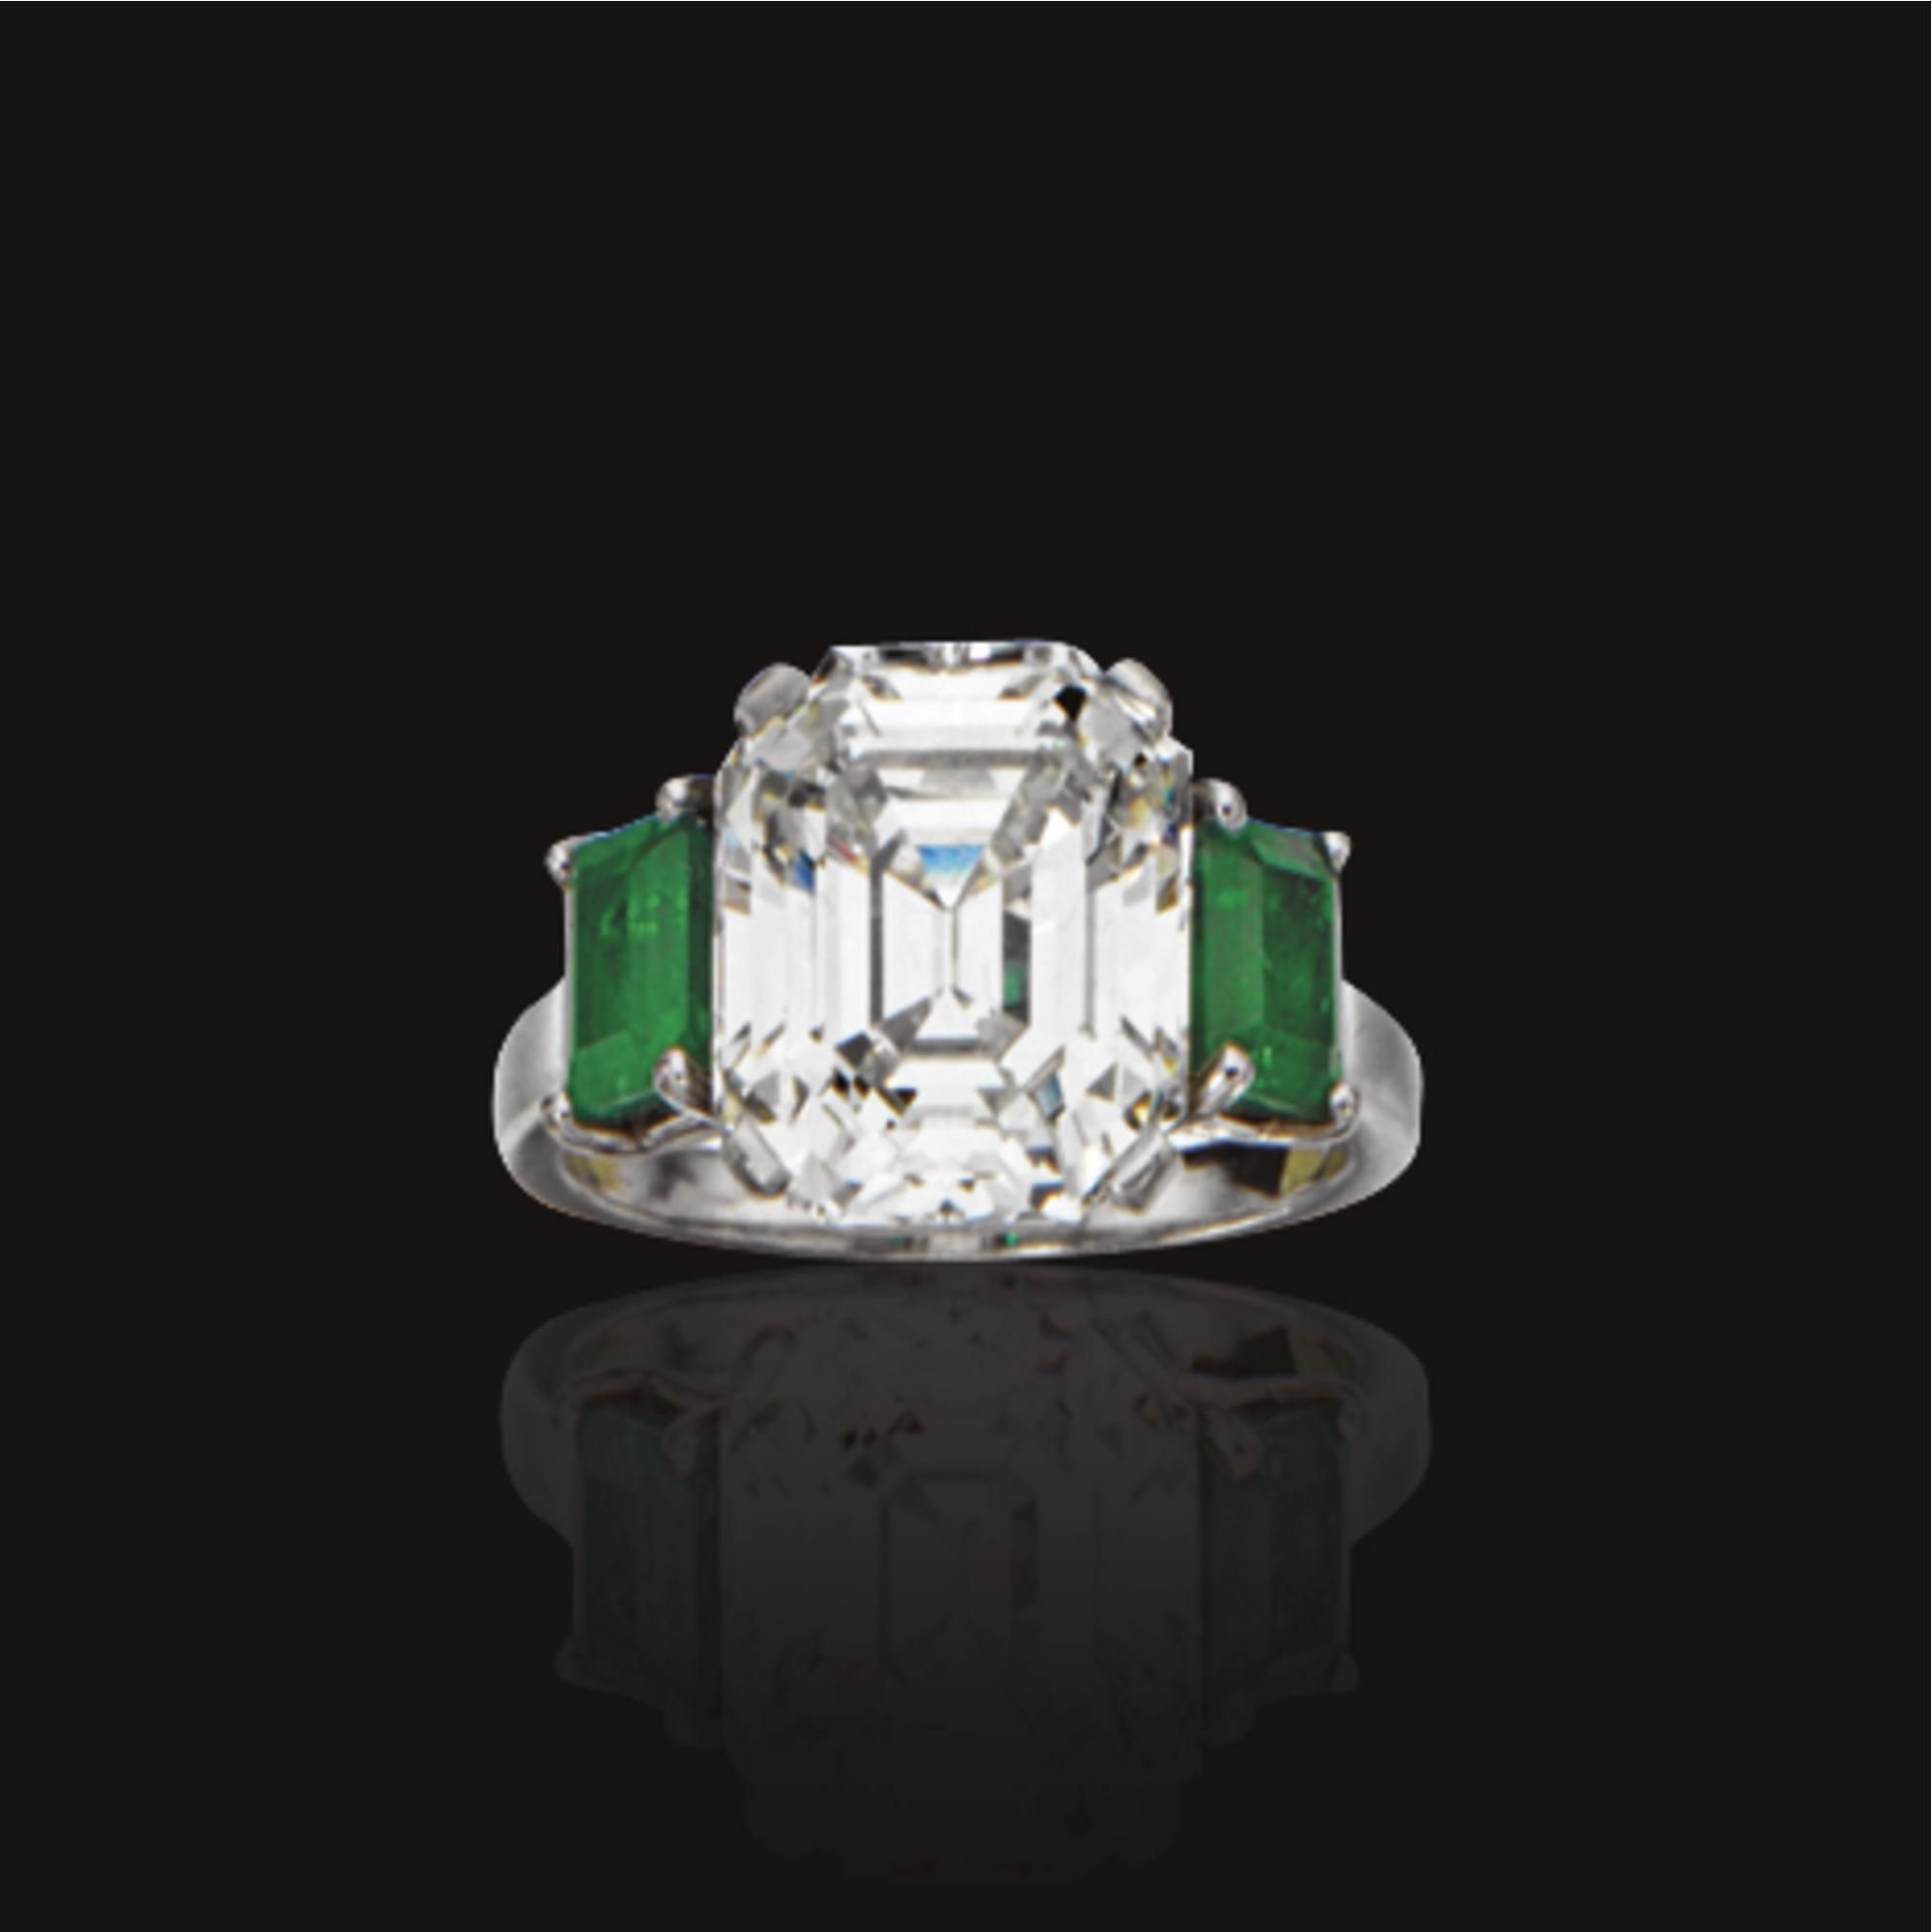 7c038928ba940 Jewelry at Sotheby's - Asscher-cut diamond and emerald side stones ...